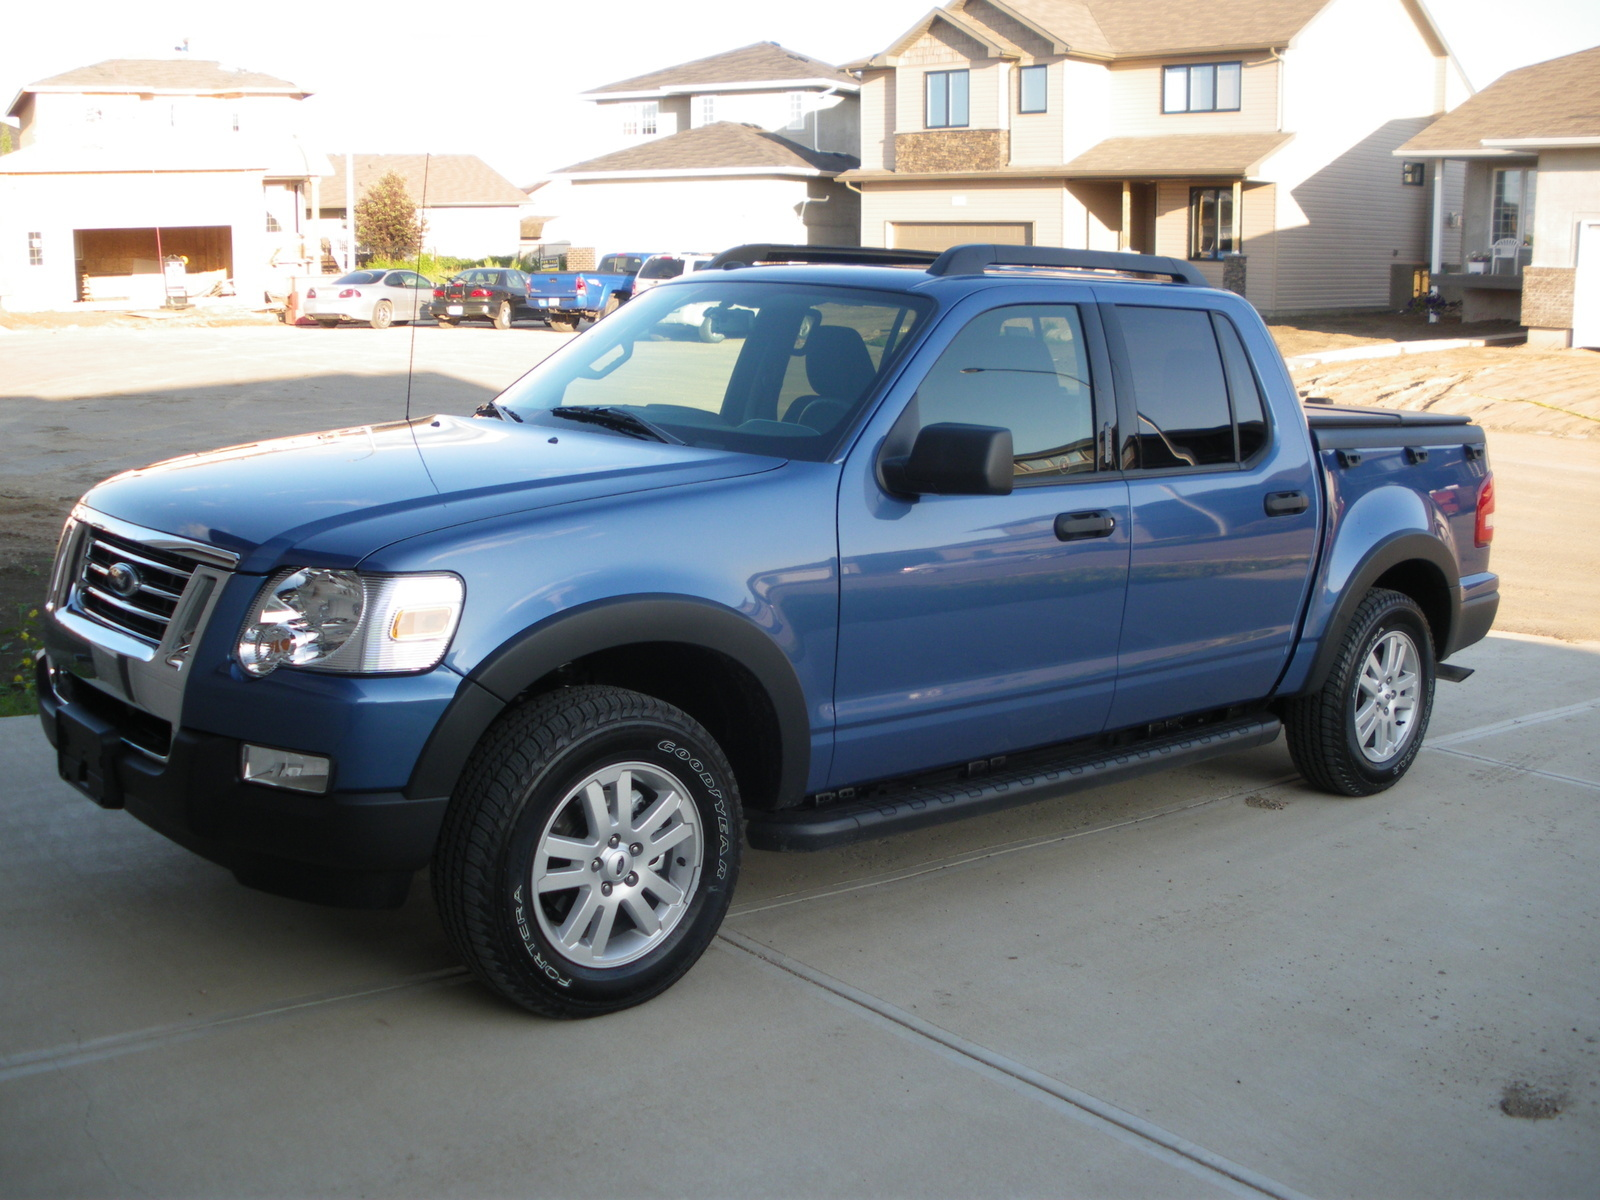 Ford Explorer Pickup >> Used Ford Explorer Sport Trac For Sale With Photos Cargurus